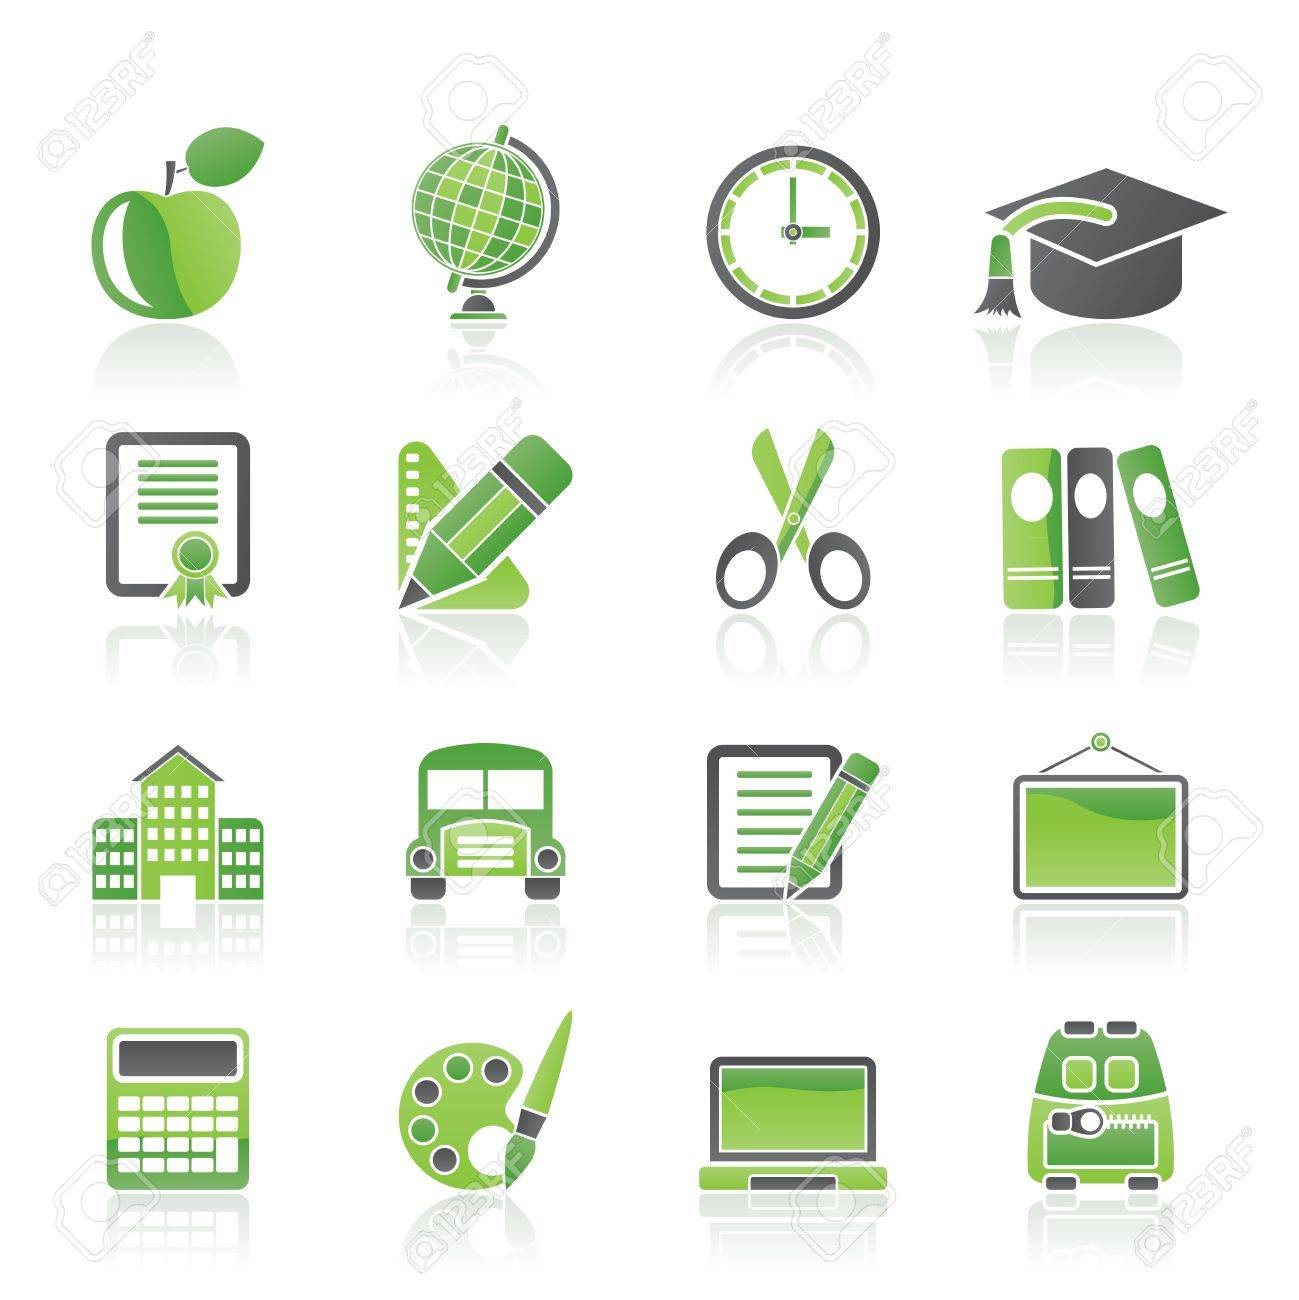 school and education icons - vector icon set Stock Vector - 13006912